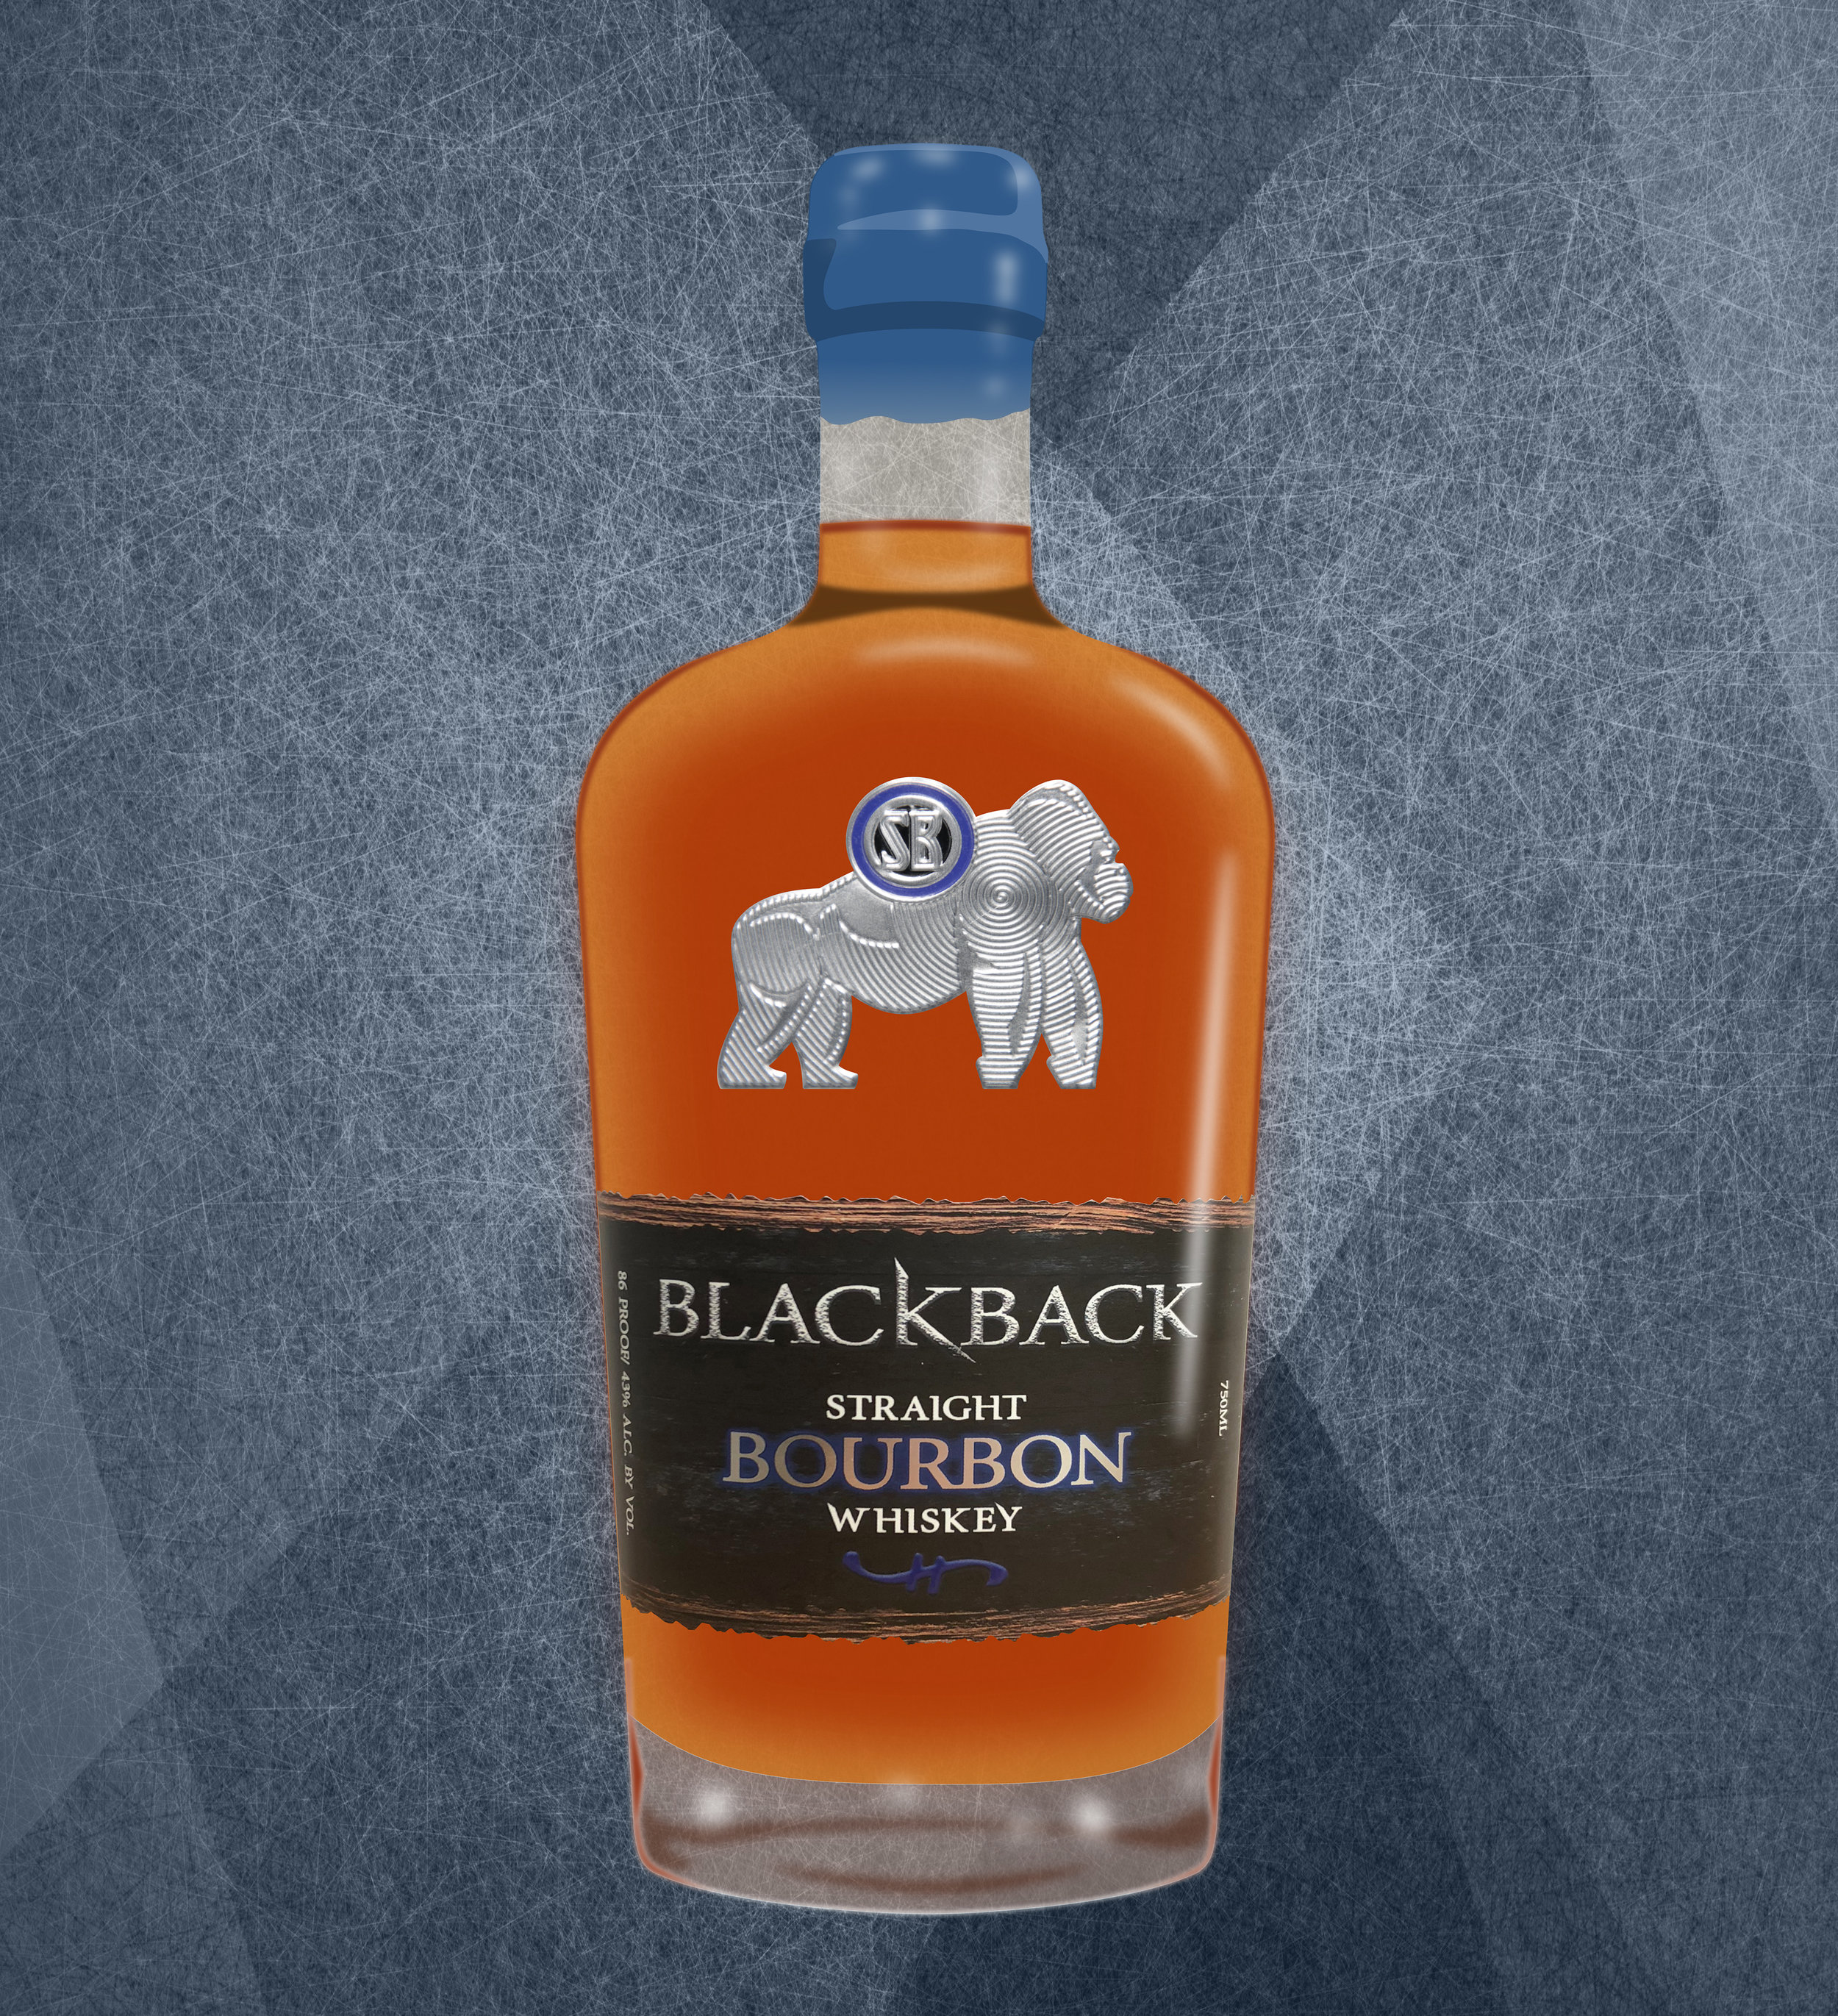 Bourbondigitaldesignbluebackground.jpg